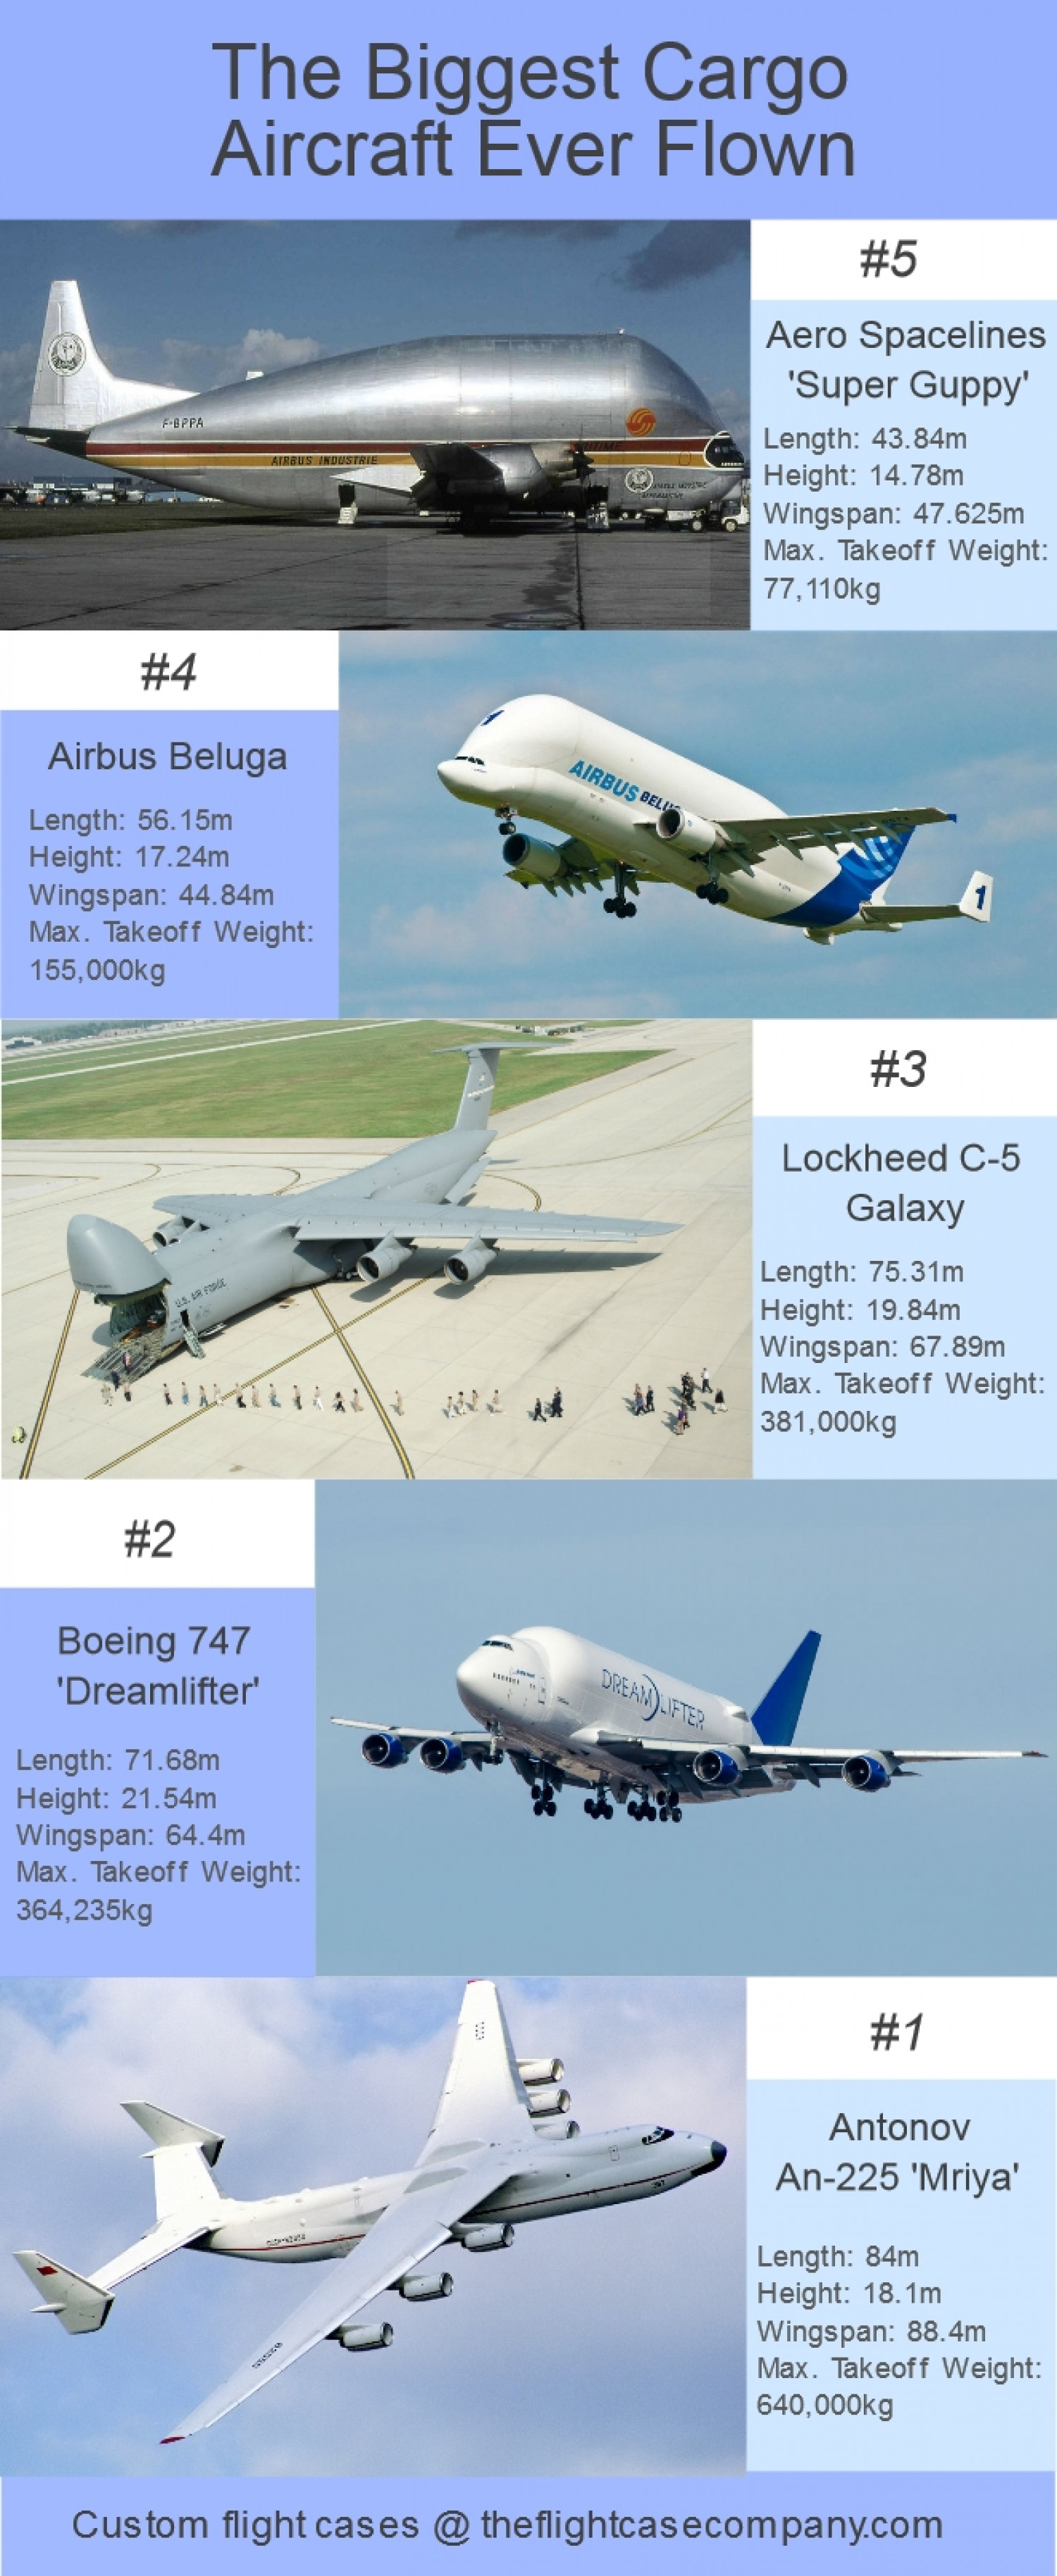 The Biggest Cargo Aircraft Ever Flown Infographic